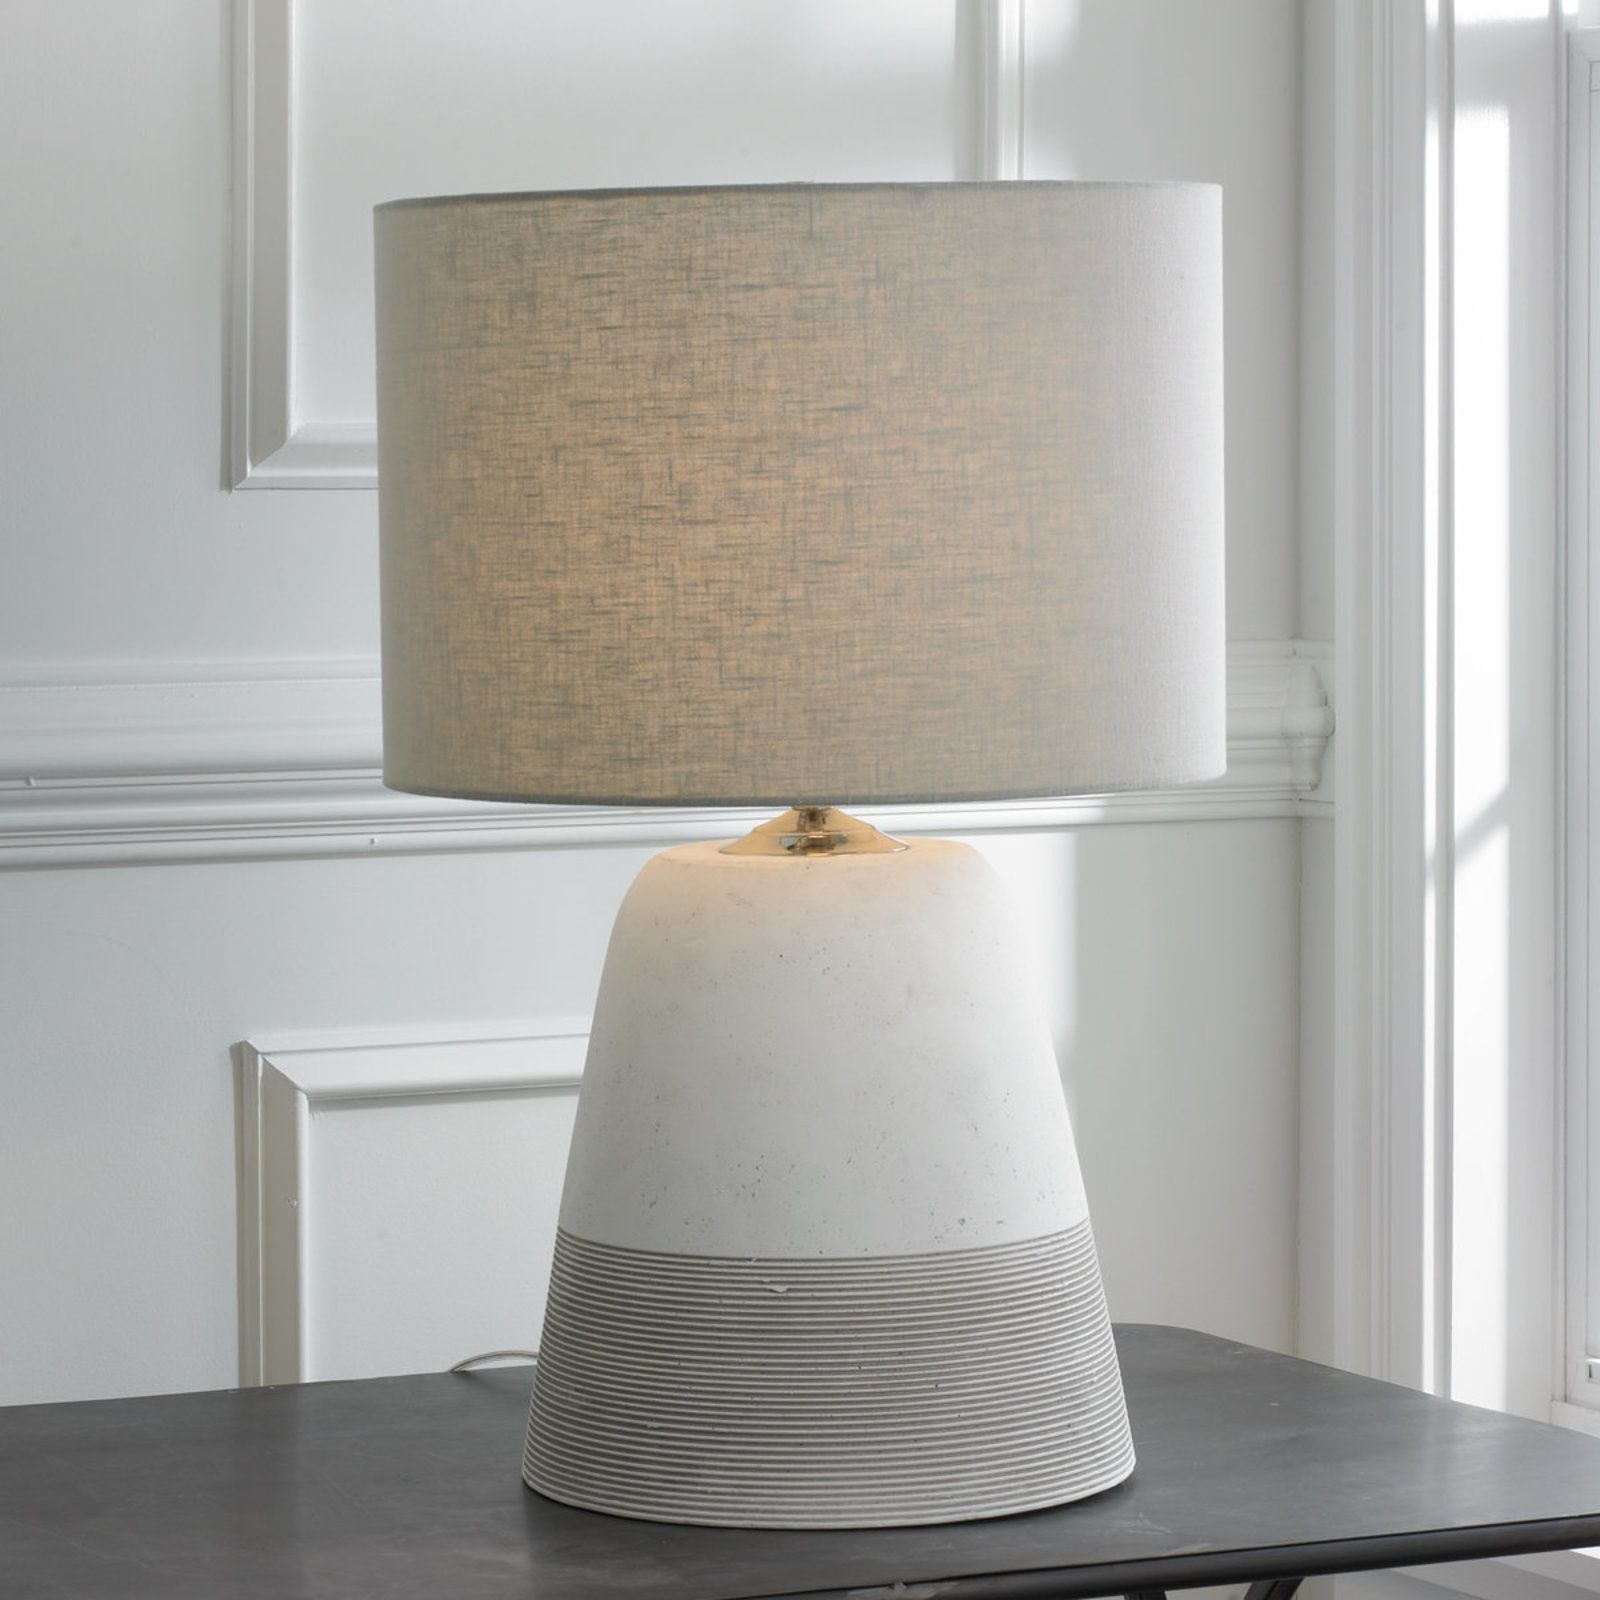 Grooved concrete table lamp small products results and lamps grooved concrete table lamp small geotapseo Choice Image